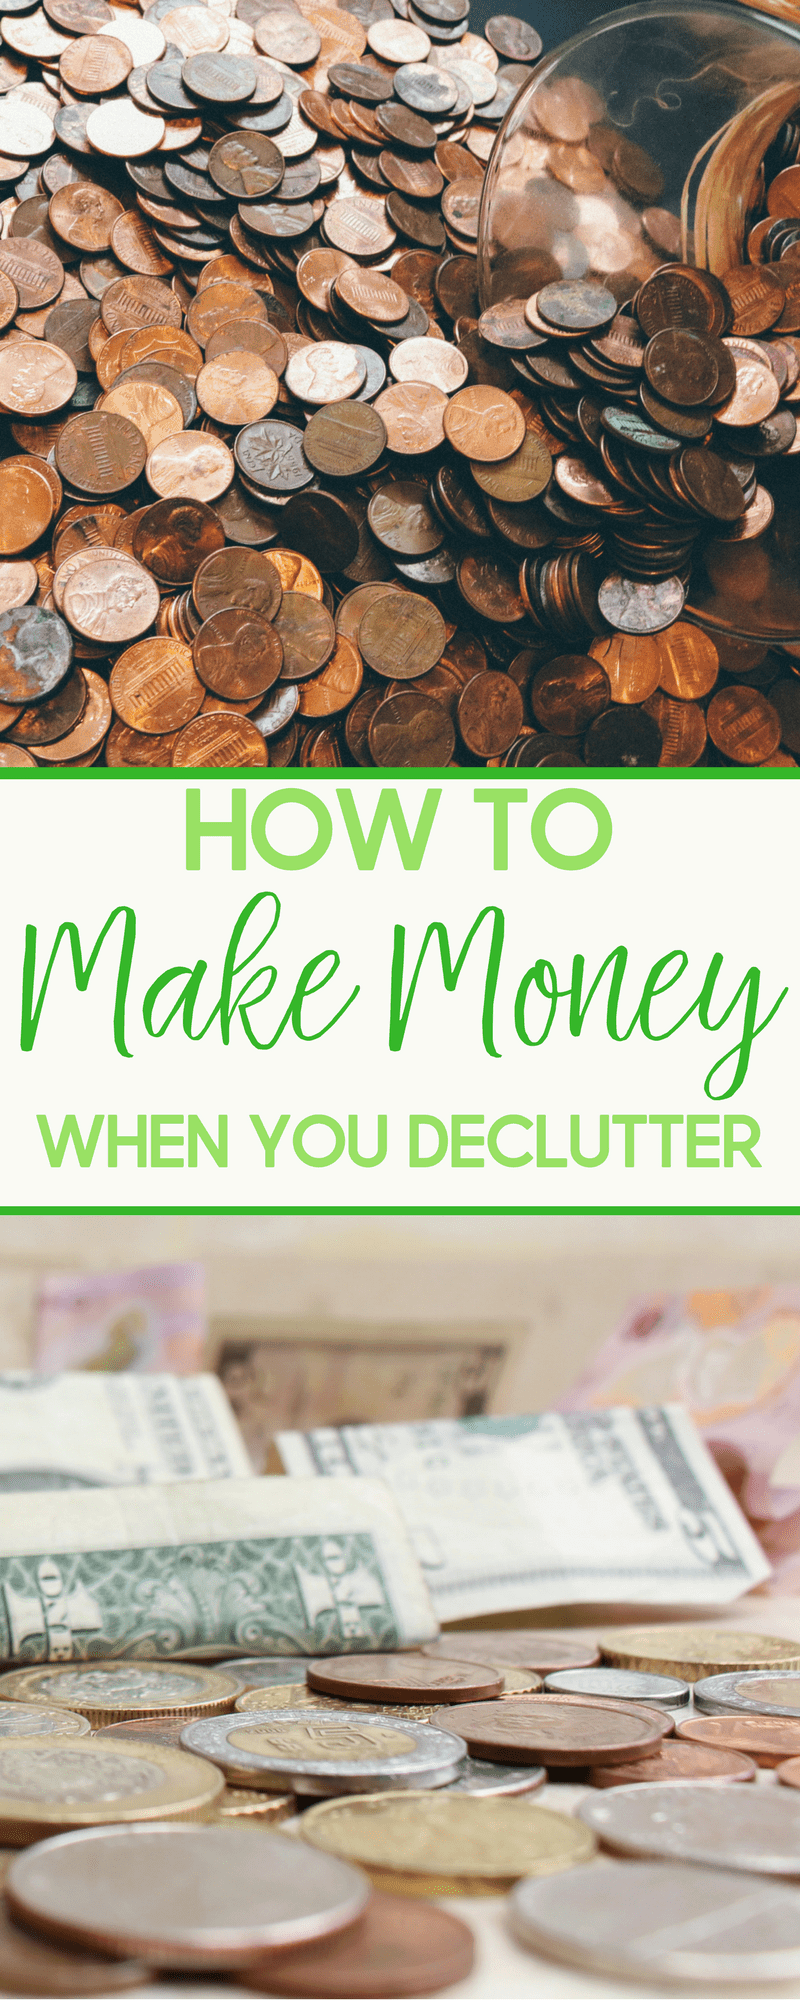 Decluttering can not only lead to a cleaner and more organized home, but it could also make you some extra money.